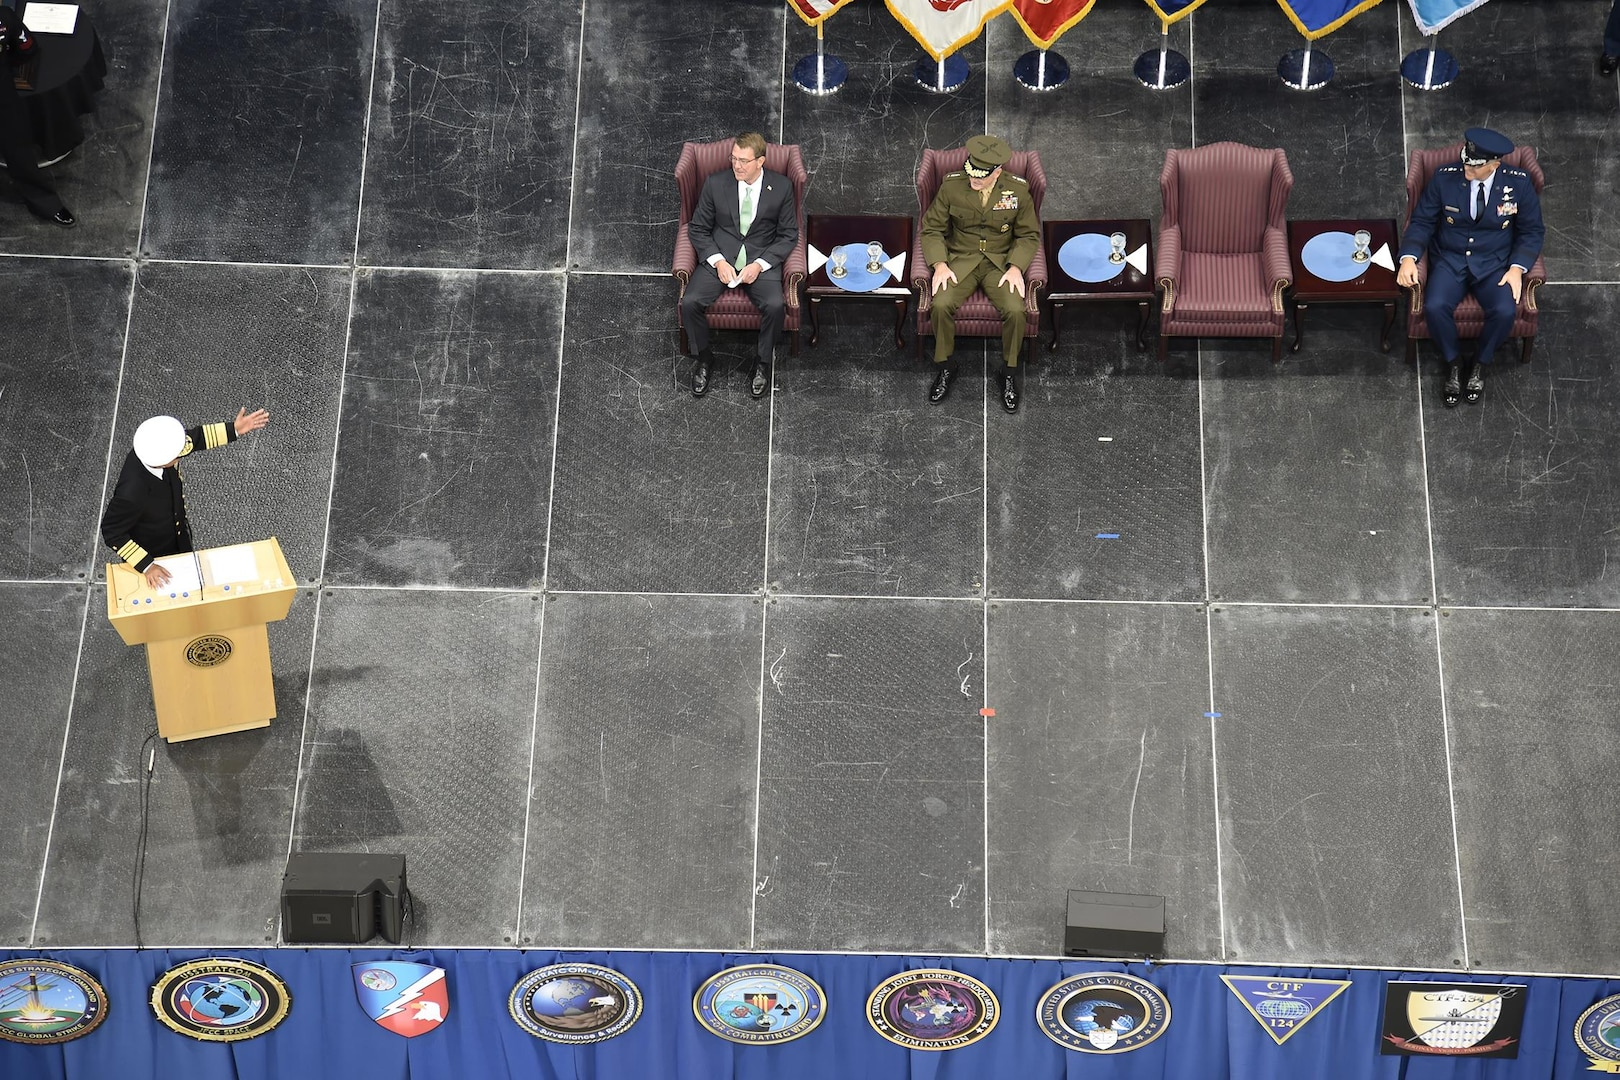 Adm. Cecil D. Haney, outgoing U.S. Strategic Command (USSTRATCOM) commander, speaks to Secretary of Defense Ash Carter, Chairman of the Joint Chiefs of Staff, Gen. Joseph Dunford and Gen. John E. Hyten, incoming USSTRATCOM commander, at USSTRATCOM's change of command ceremony at Offutt Air Force Base, Neb., Nov. 3, 2016. Carter presided over the change of command and provided remarks during which he thanked Adm. Cecil D. Haney, outgoing USSTRATCOM commander, for his service. He also congratulated Gen. John E. Hyten on his appointment as the new USSTRATCOM commander. Additionally, Chairman of the Joint Chiefs of Staff Gen. Joseph F. Dunford provided remarks during the ceremony and presented the Joint Meritorious Unit Award to USSTRATCOM. Hyten previously served as commander of Air Force Space Command, and Haney will retire from active military duty during a separate ceremony in January. One of nine DoD unified combatant commands, USSTRATCOM has global strategic missions assigned through the Unified Command Plan that include strategic deterrence; space operations; cyberspace operations; joint electronic warfare; global strike; missile defense; intelligence, surveillance and reconnaissance; combating weapons of mass destruction; and analysis and targeting. (U.S. Navy photo by Petty Officer 1st Class Byron C. Linder)